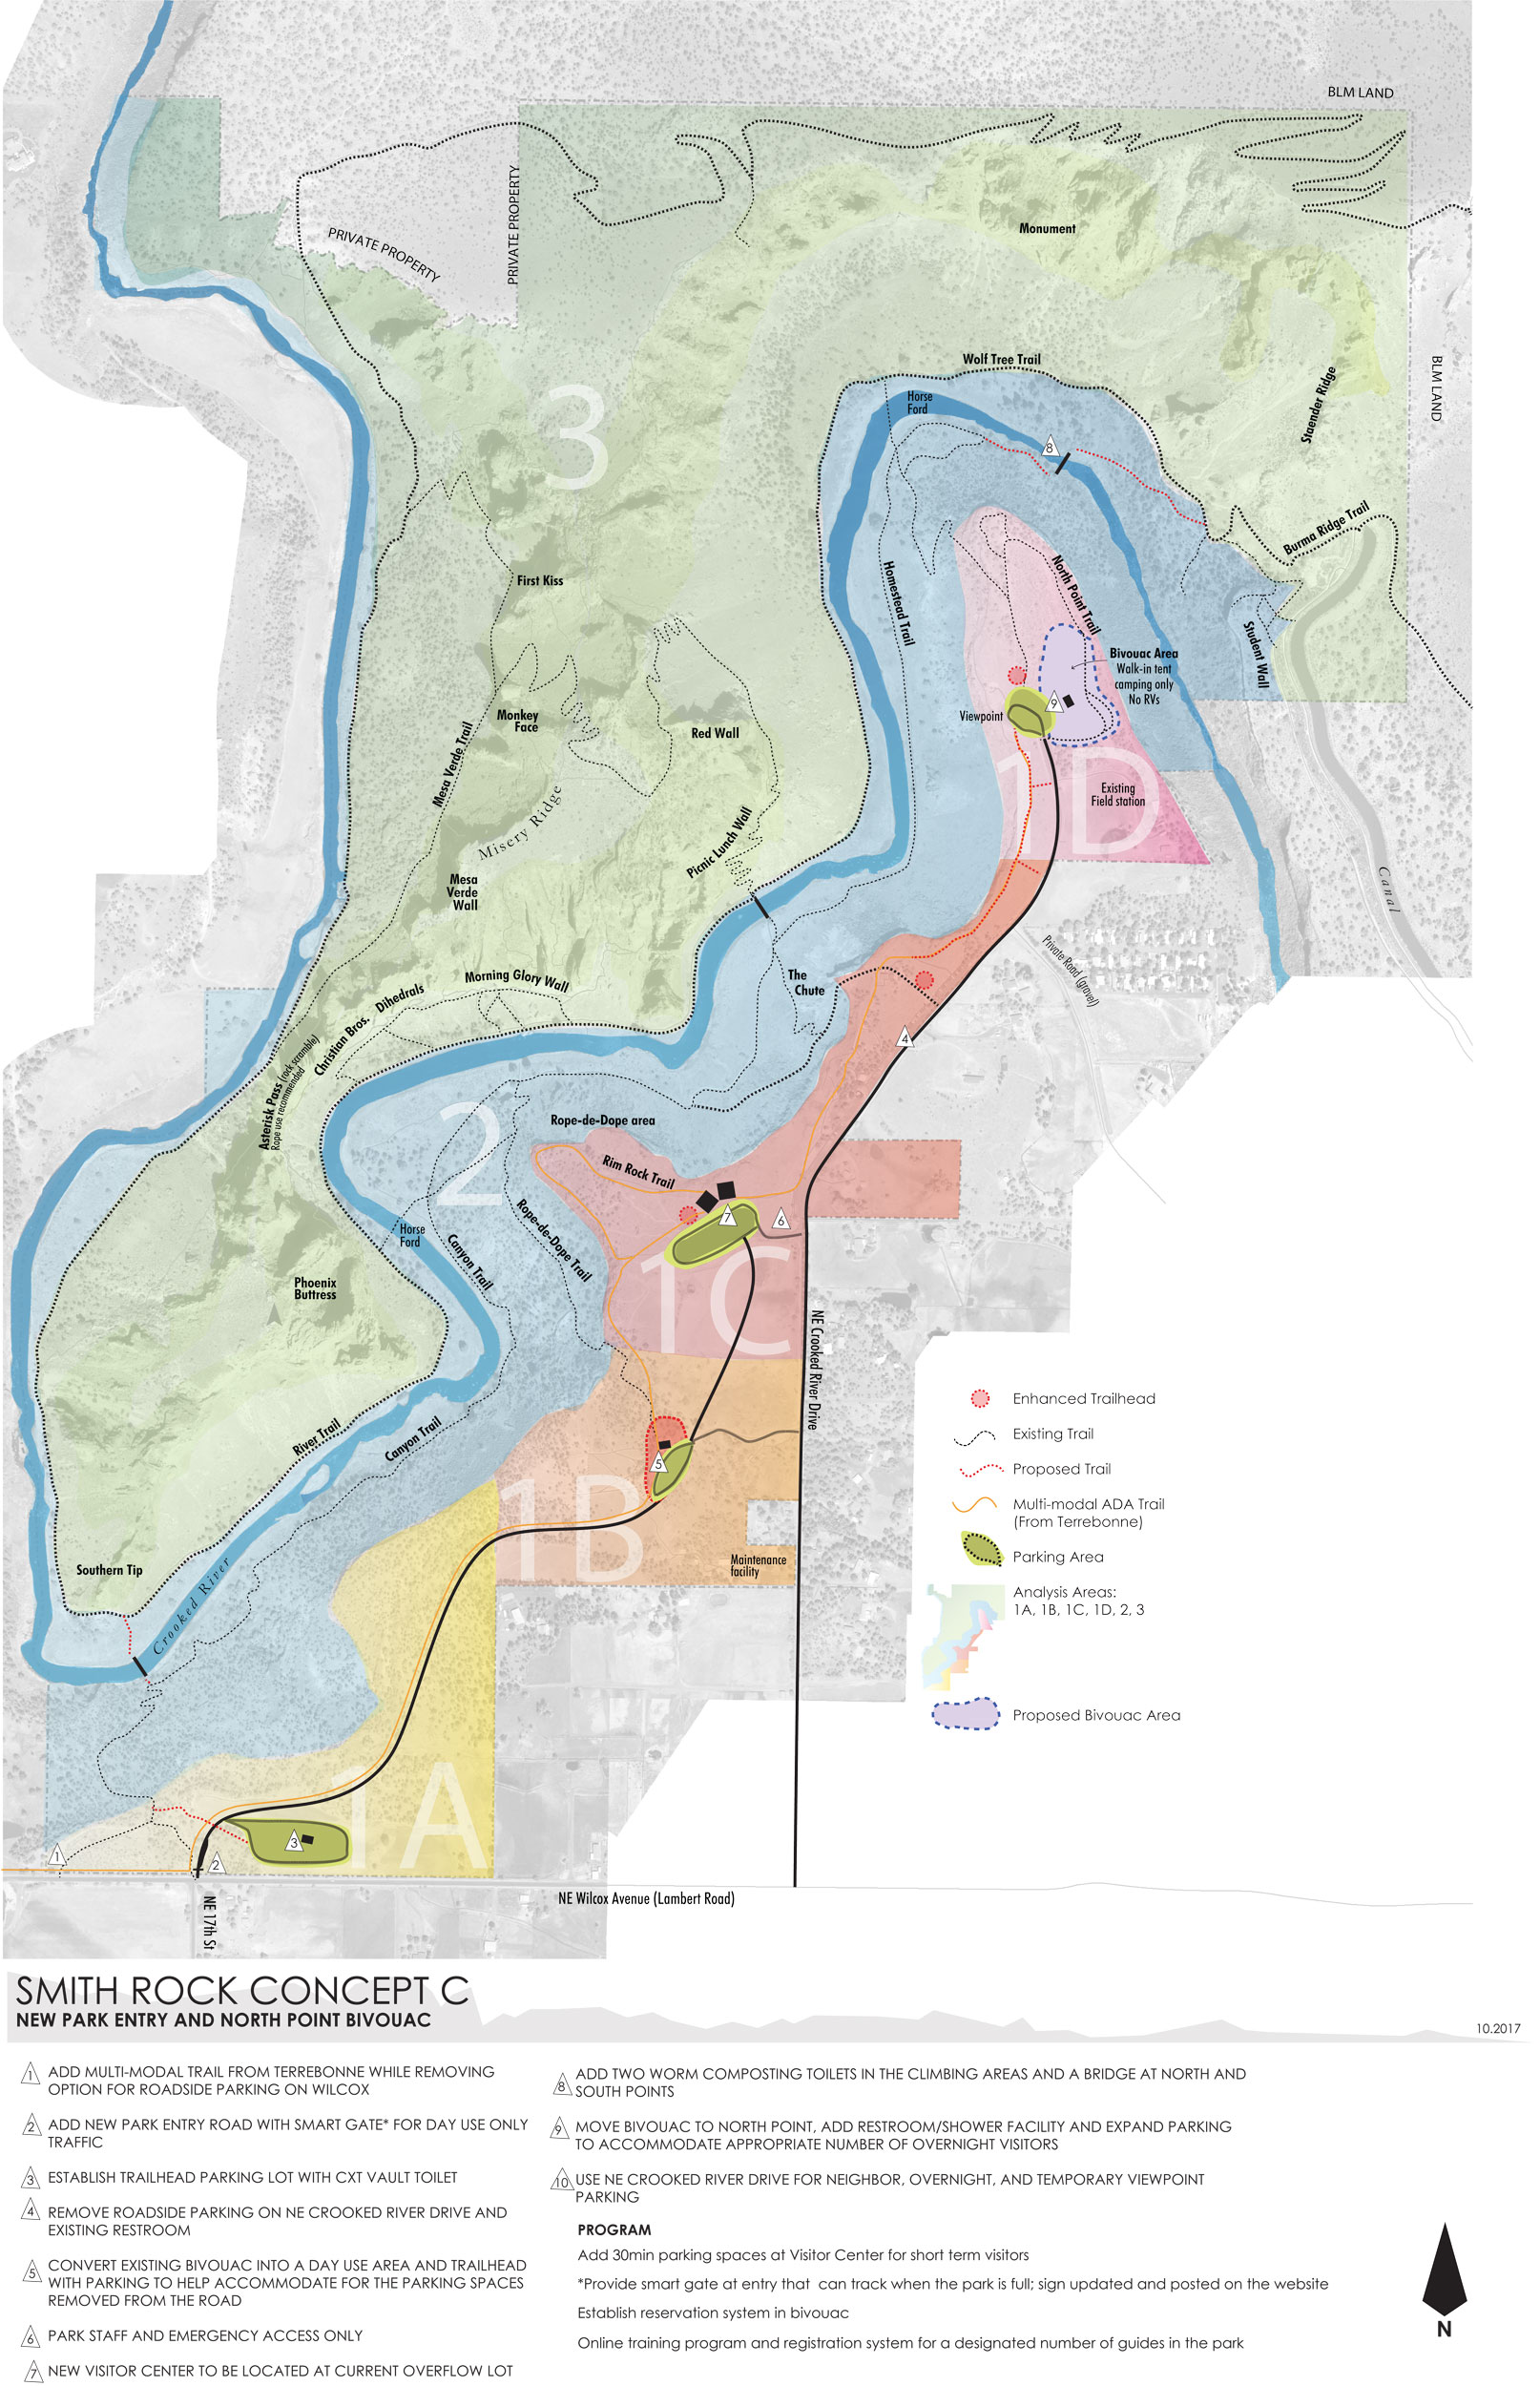 Smith Rock Master Plan Concept C—click to enlarge